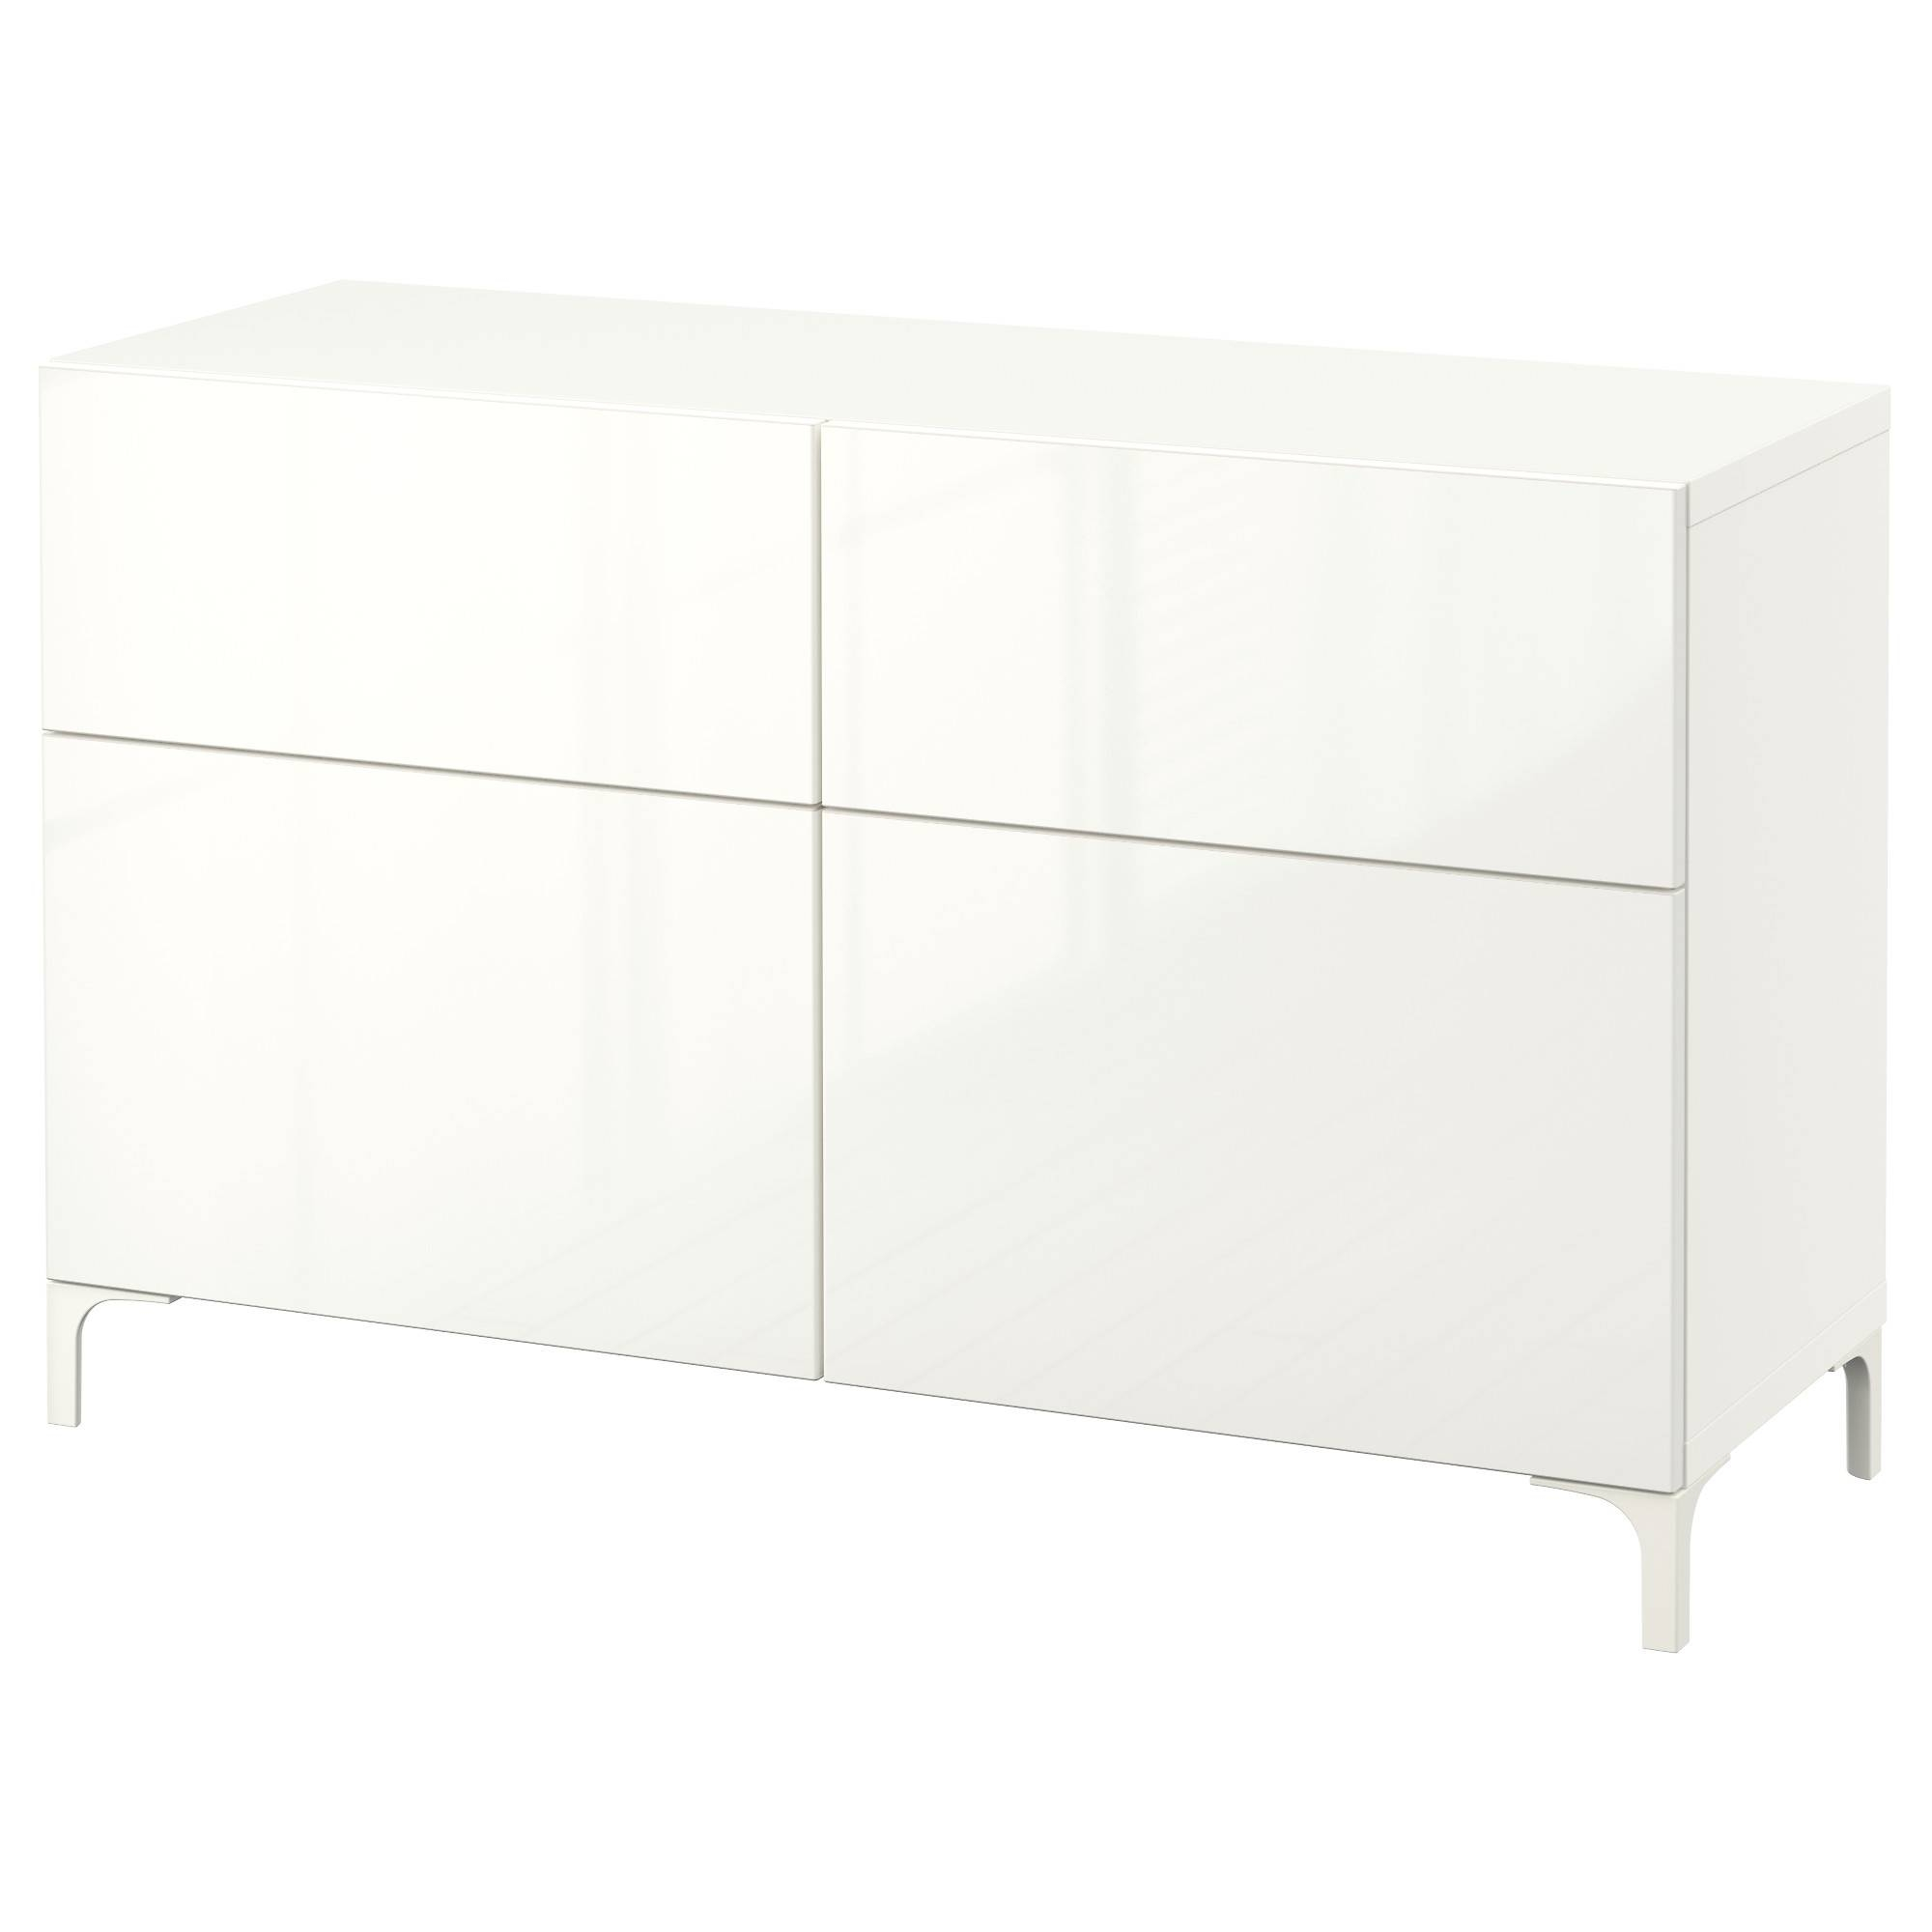 Bestå Storage Combination W Doors/drawers – White/selsviken High Pertaining To 2017 White Gloss Ikea Sideboards (View 3 of 15)